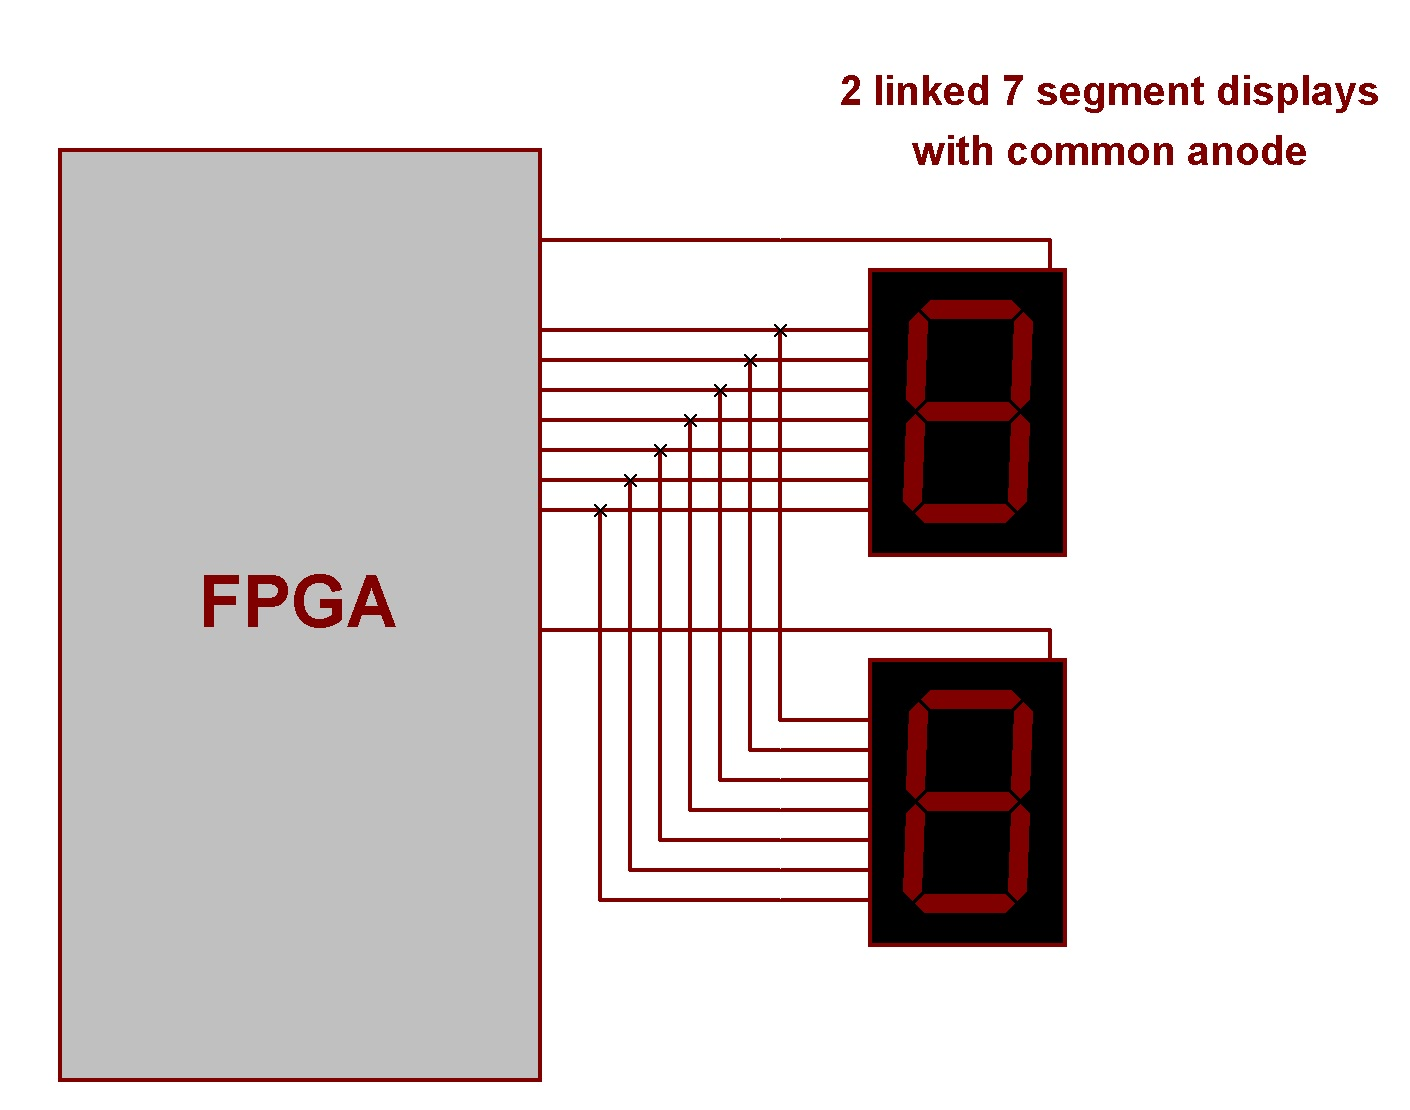 Fpga Tutorials Multiplexing 7 Segment Displays The 4digit 7segment Led Display Driver Circuit We Will Build Using A If You Wanted To Show 2 Different Numbers At Same Time Couldnt Use Method From Previous Post Because Have Data